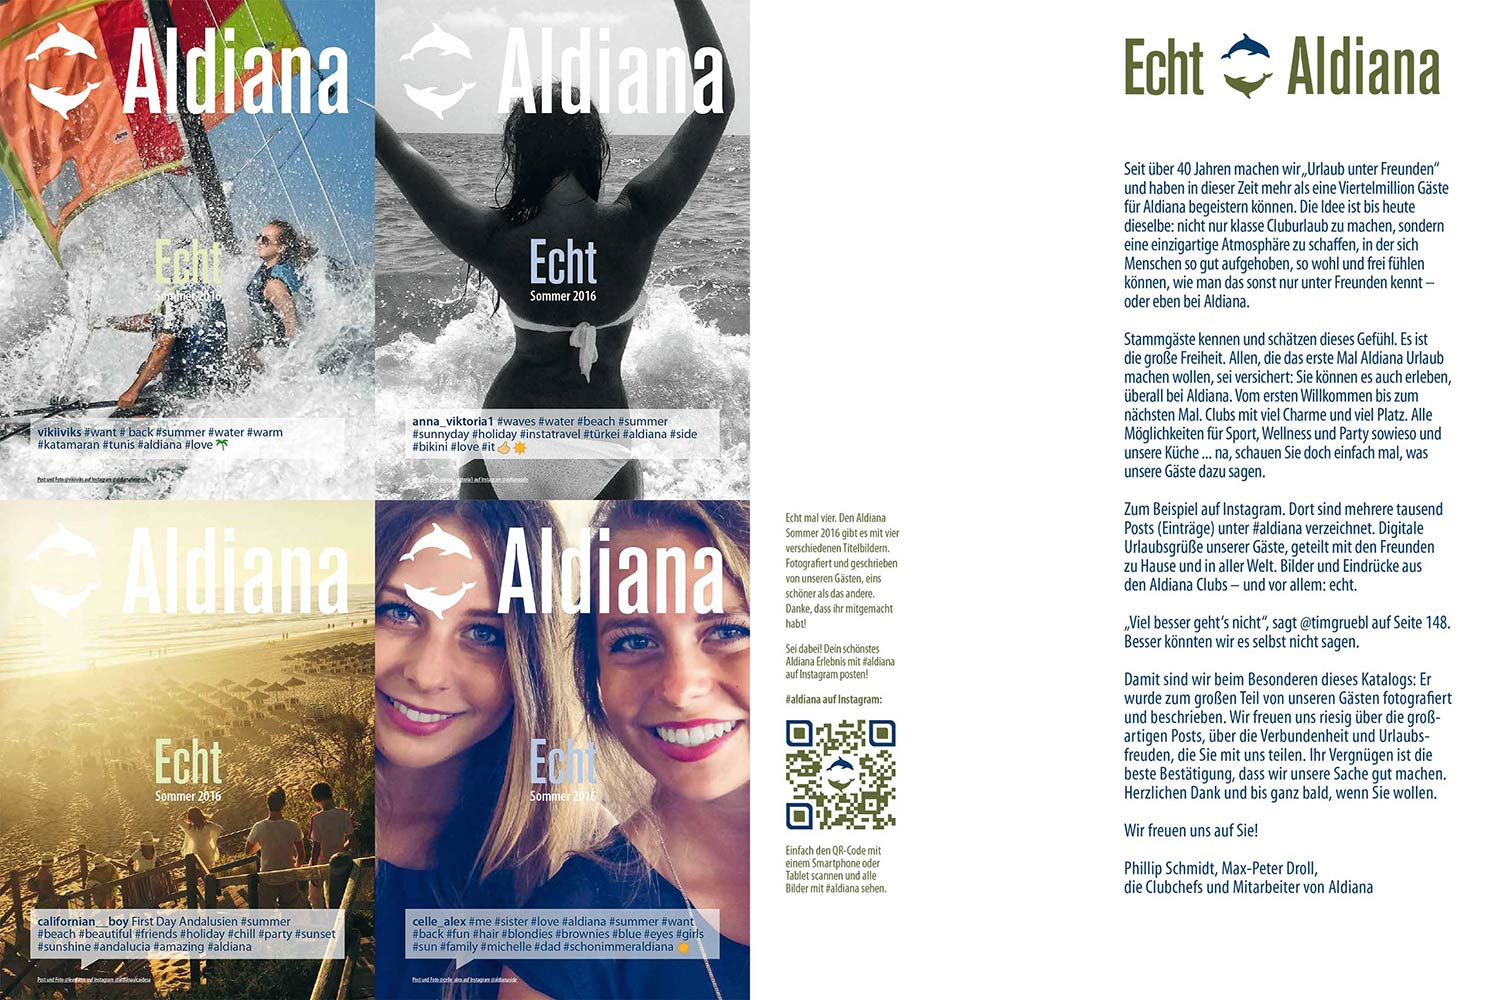 Letter of the President Echt Aldiana Katalog Sommer 2016 Instagram